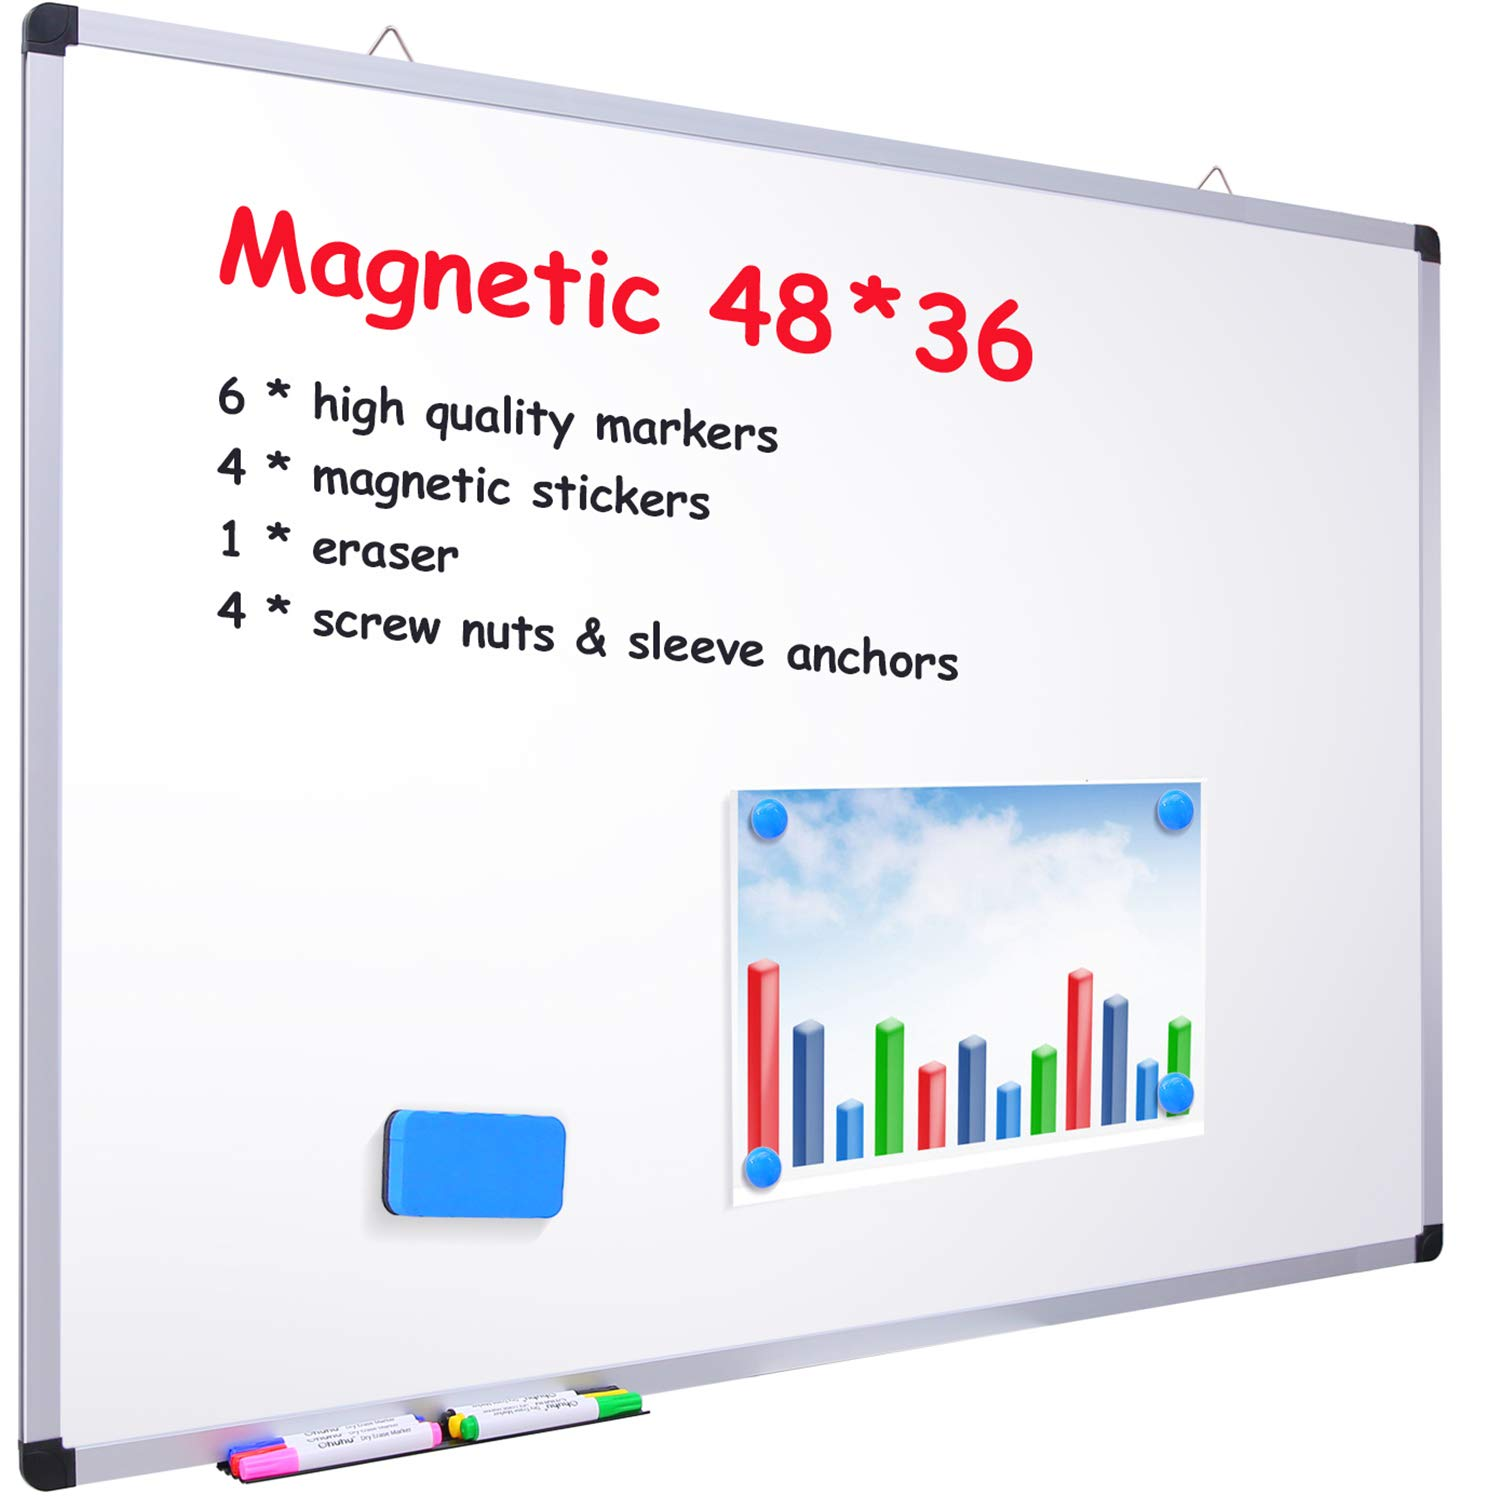 48'' x 36'' Dry Erase Board, Ohuhu Magnetic Large Whiteboard/White Board with 6 Color Dry Erase Markers, 4 x Magnetic Stickers, 1 x Eraser, 4 x Screw Nuts & Sleeve Anchors, Aluminum Frame, Silver